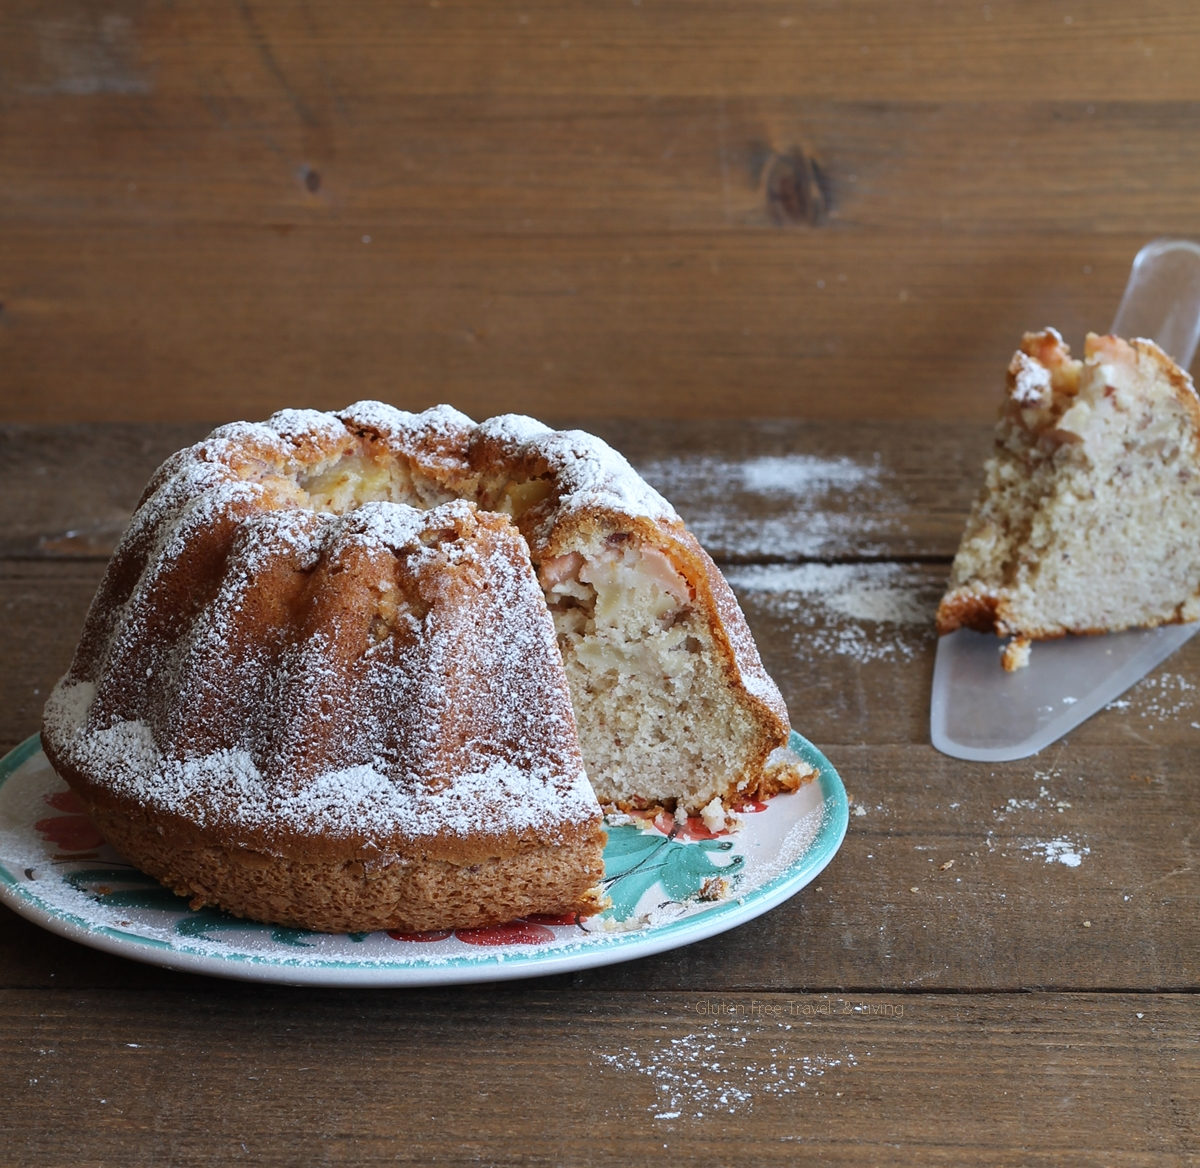 Ciambella con pere e mandorle senza glutine, la video ricetta - Gluten Free Travel and Living